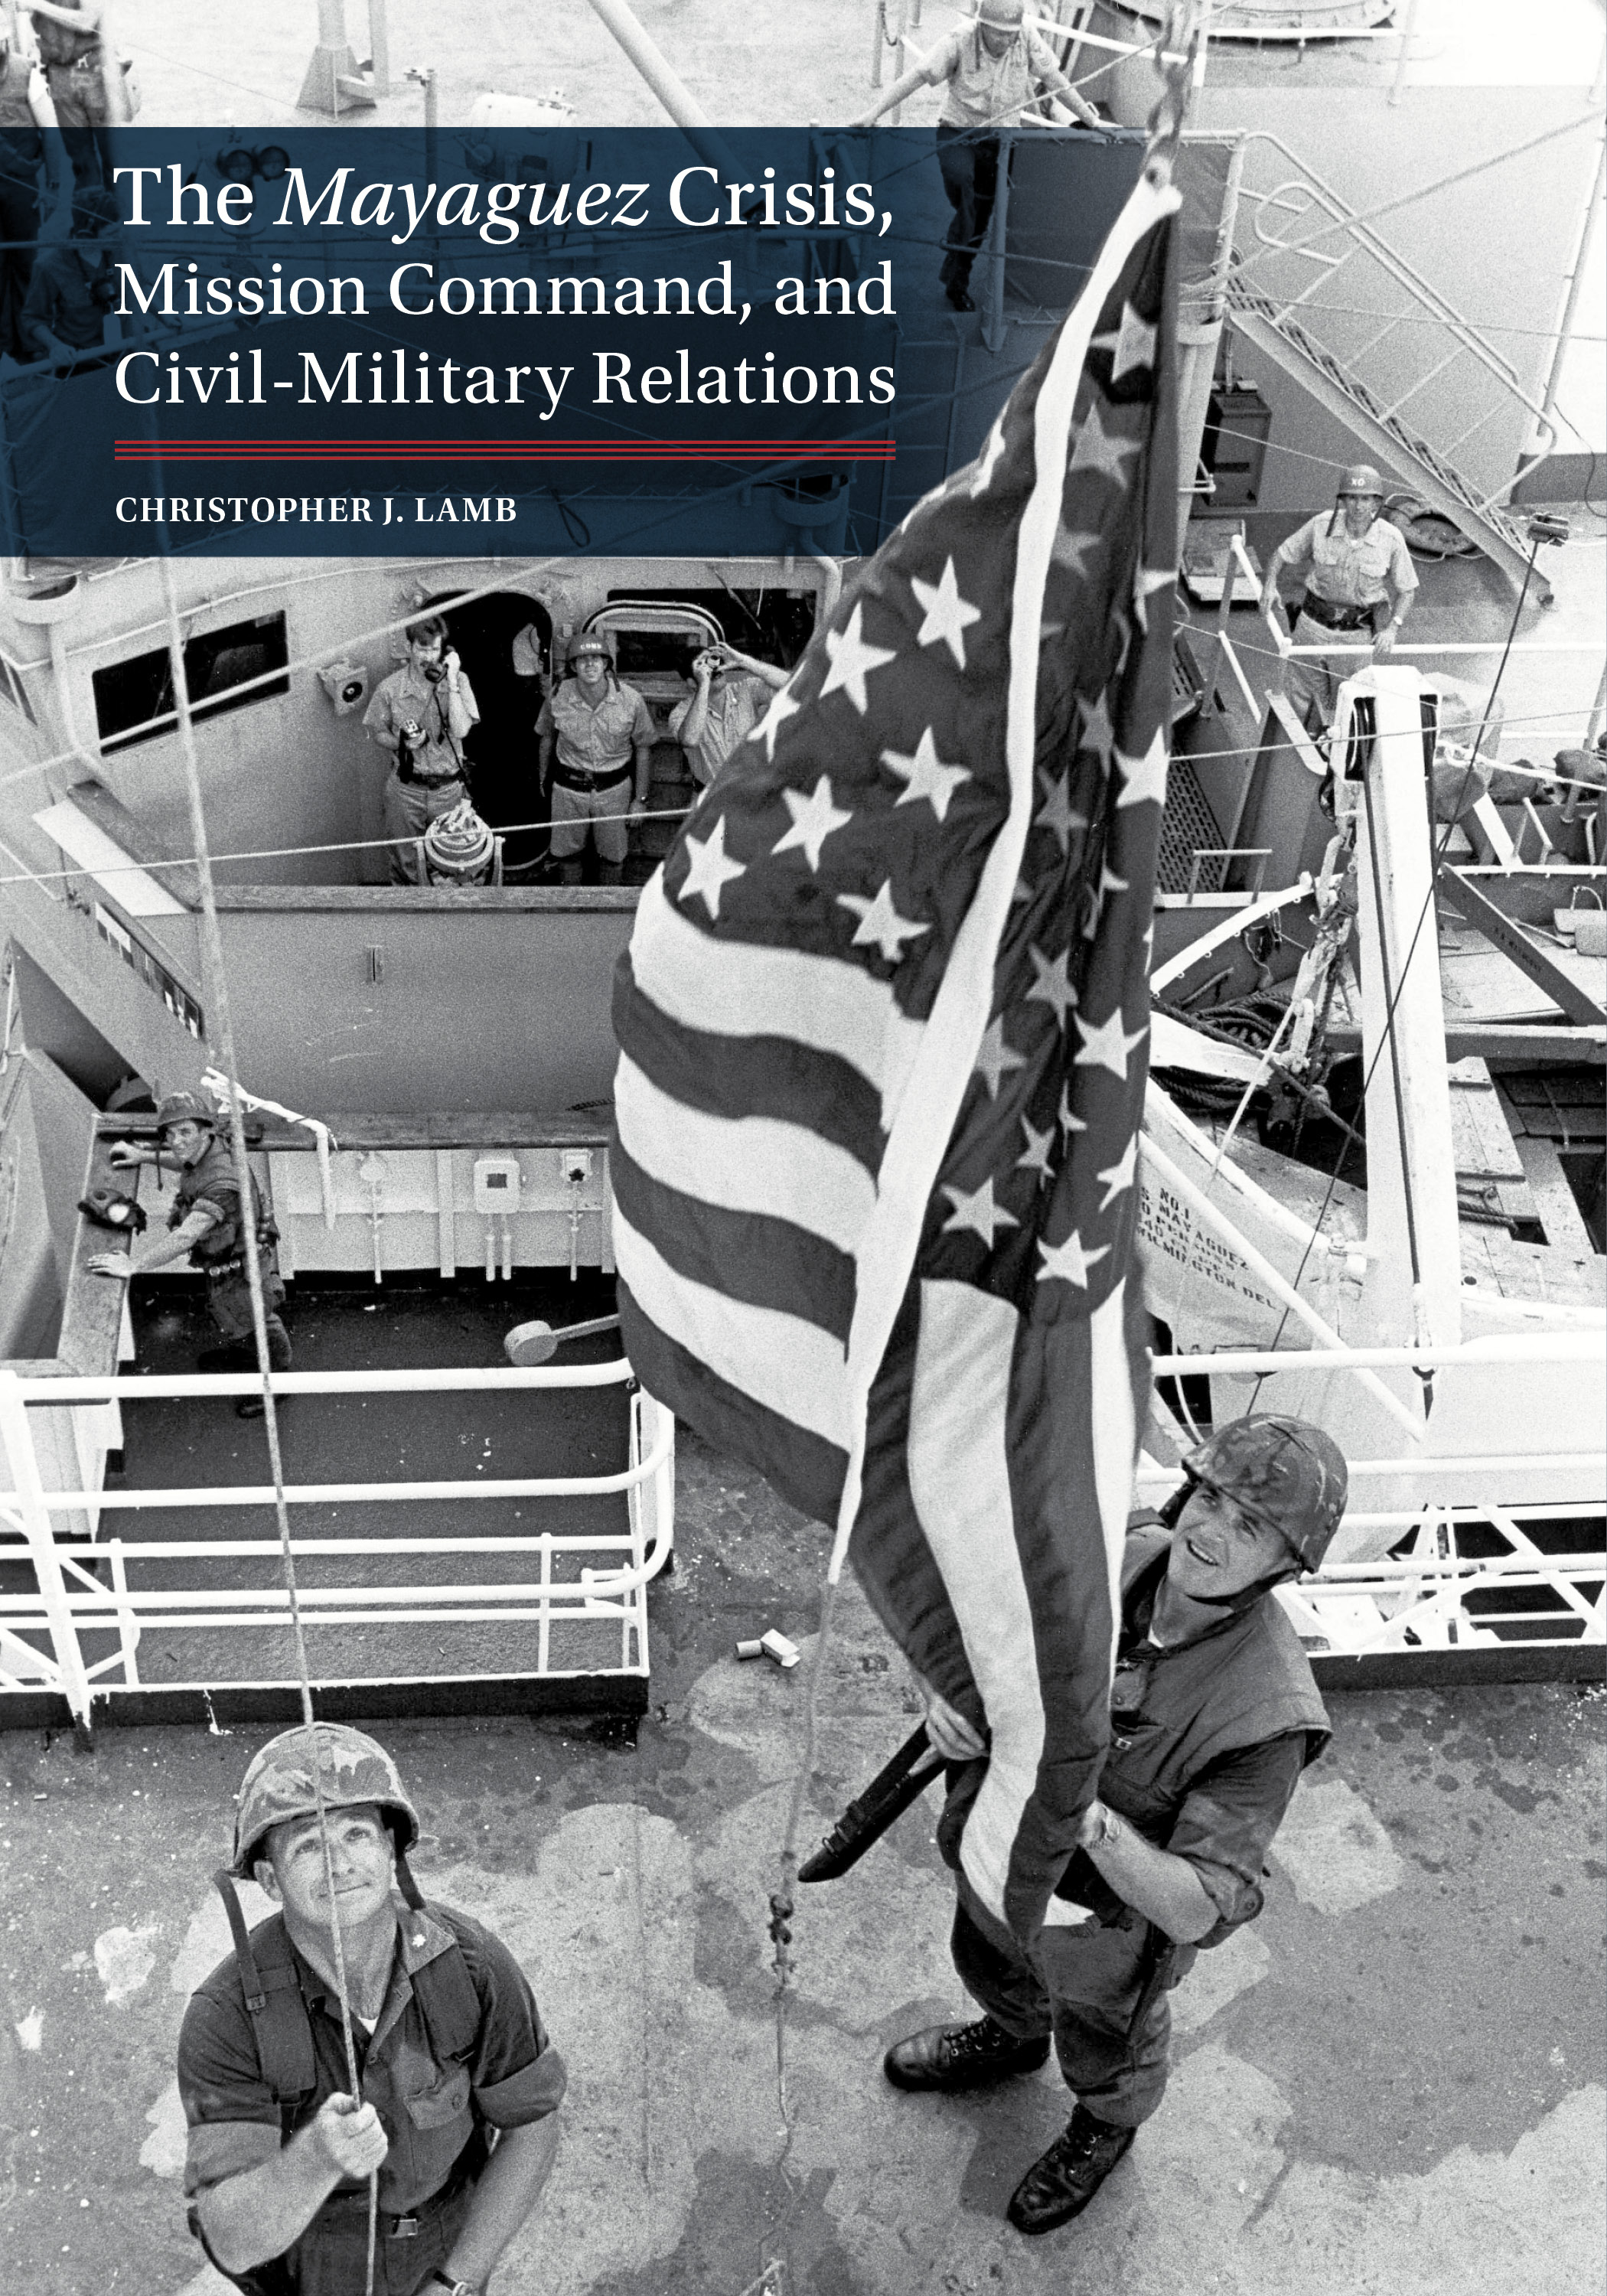 small resolution of ray porter left and capt walt wood raise the american flag above the mayaguez on may 15 1975 naval history and heritage command vietnam collection